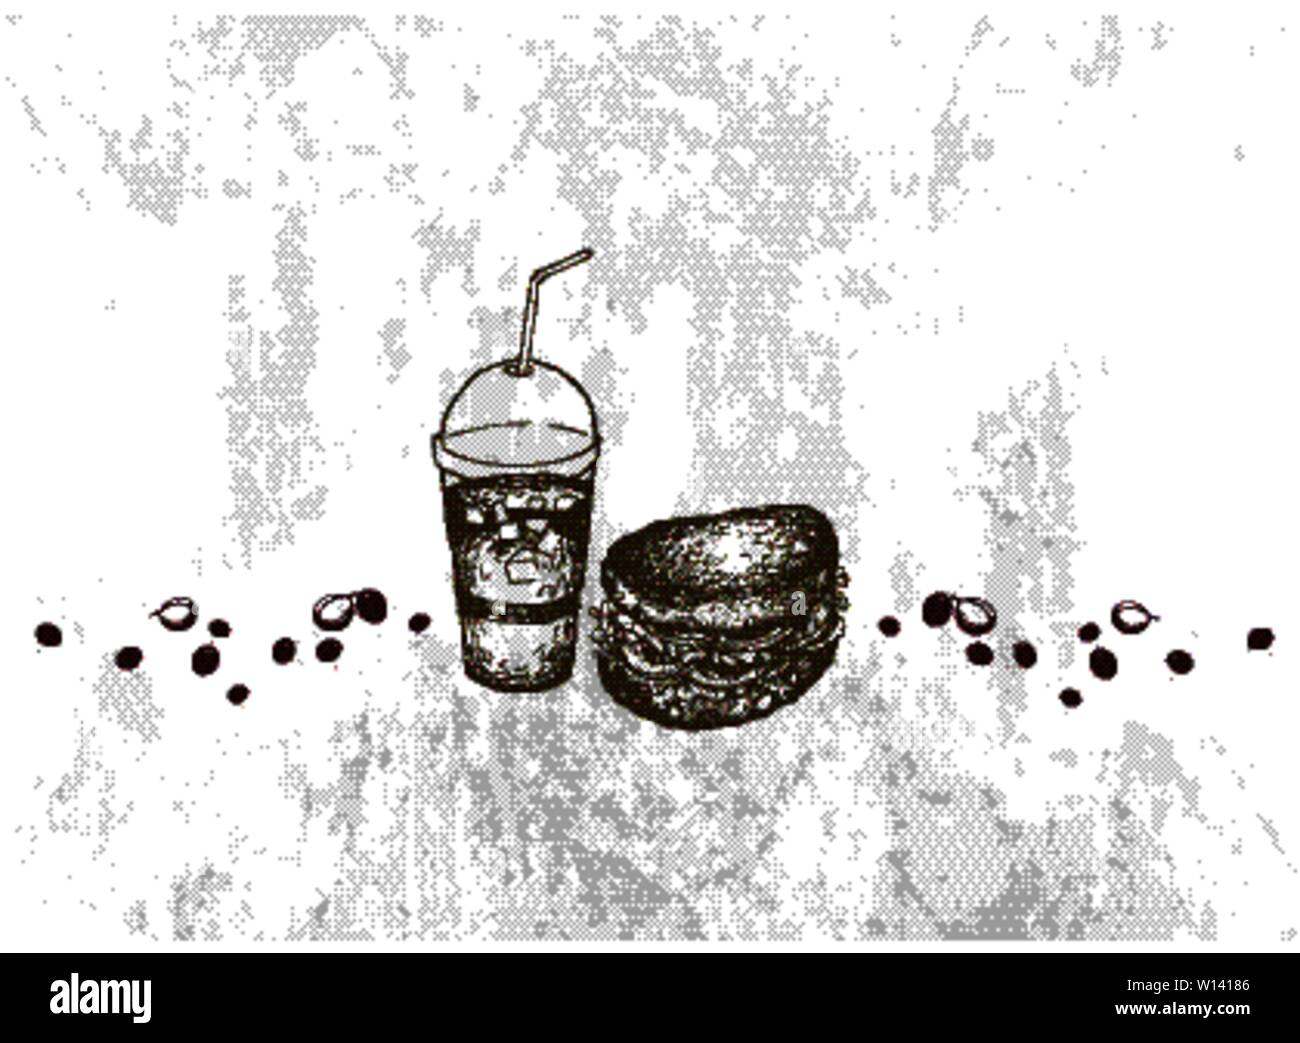 Energy Time, Illustration Hand Drawn Sketch of Delicious Homemade Freshly Healthy Whole Grain Bread Sandwich with Iced Coffee. Stock Vector